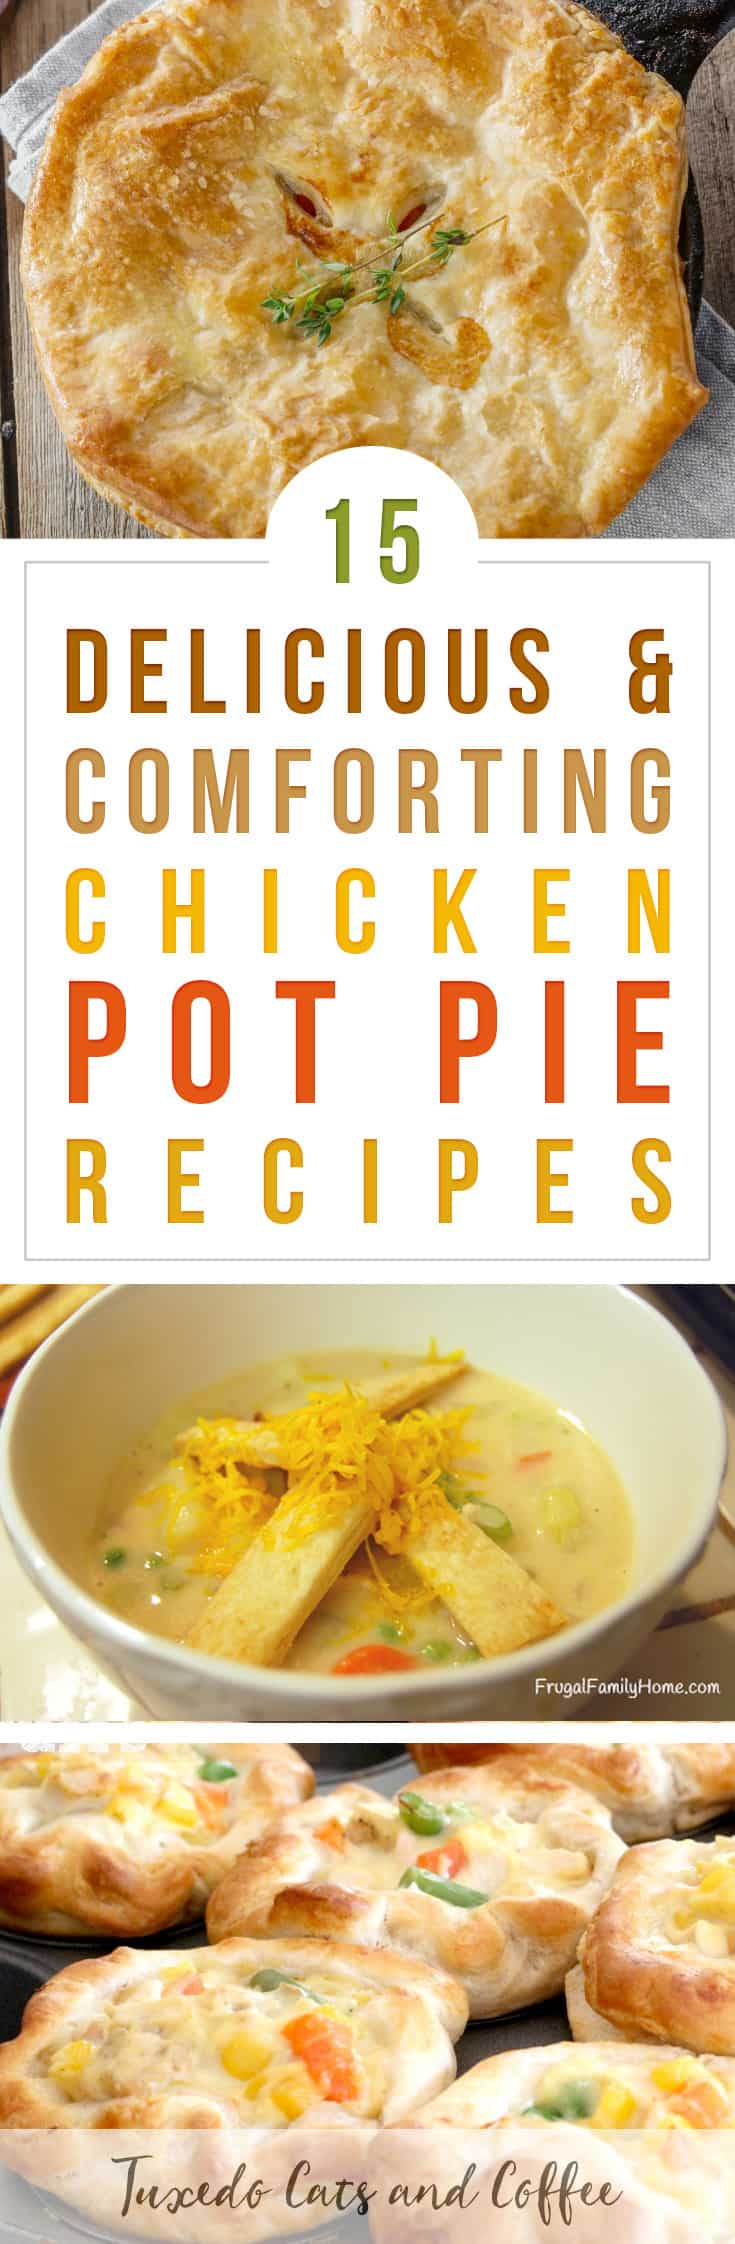 Love the flavors of chicken pot pie? We have a list of plenty of original chicken pot pie recipes as well as variations like chicken pot pie puffs, chicken pot pie soup, and more. Here are 15 delicious and comforting chicken pot pie recipes.